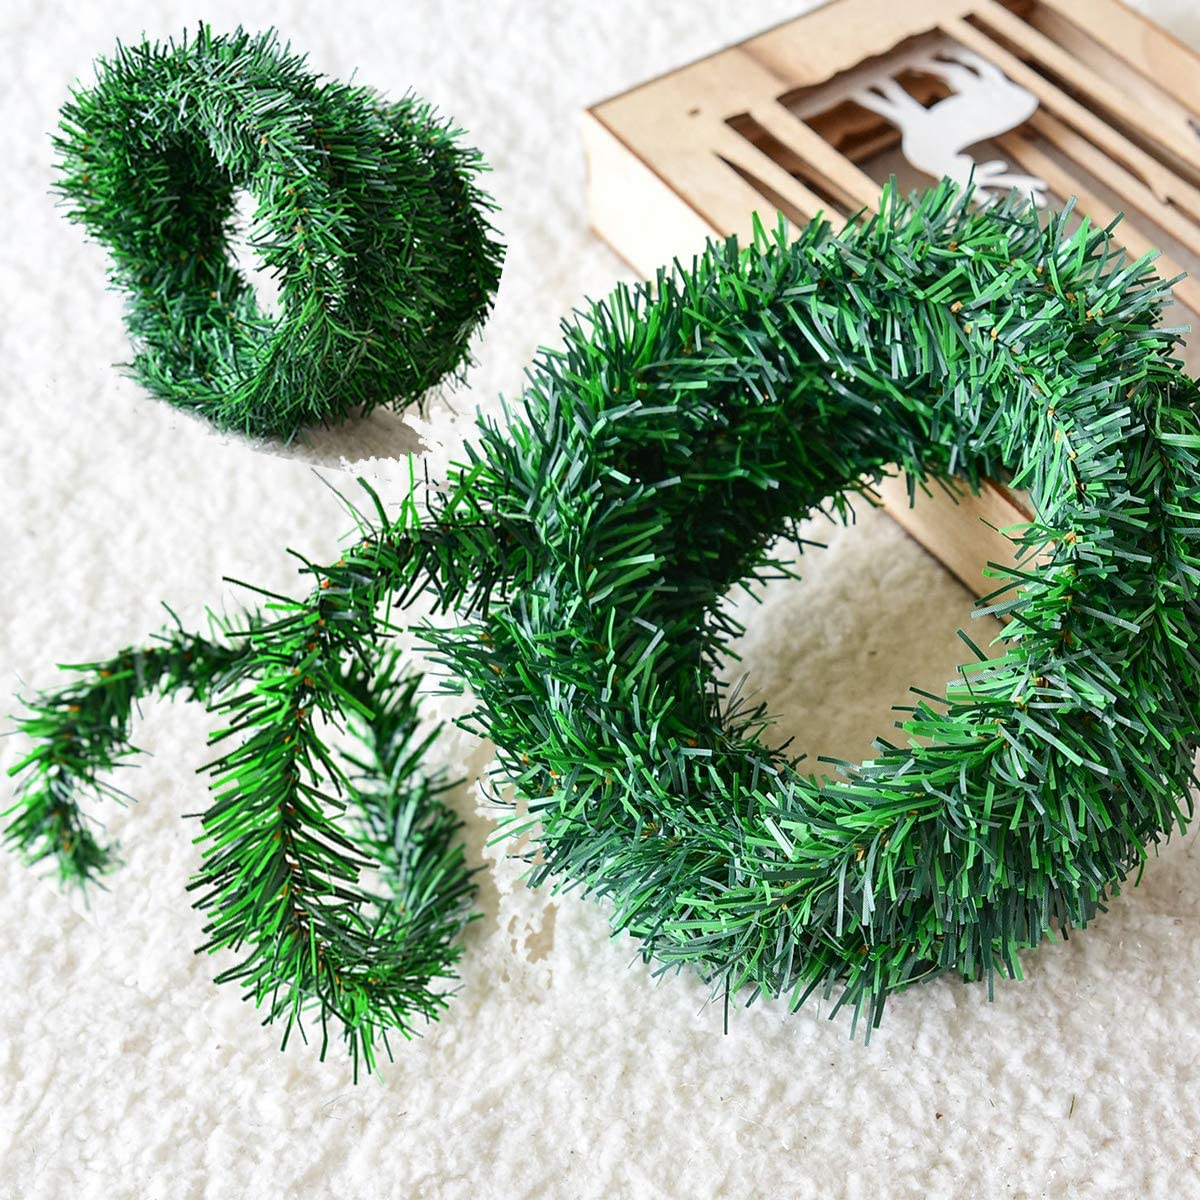 ilifemate 54 Feet Christmas Garland, Artificial Green Garland, Soft Greenery Garland, Classic Christmas Decoration for Outdoor/Indoor, Holiday Wedding Party Decoration